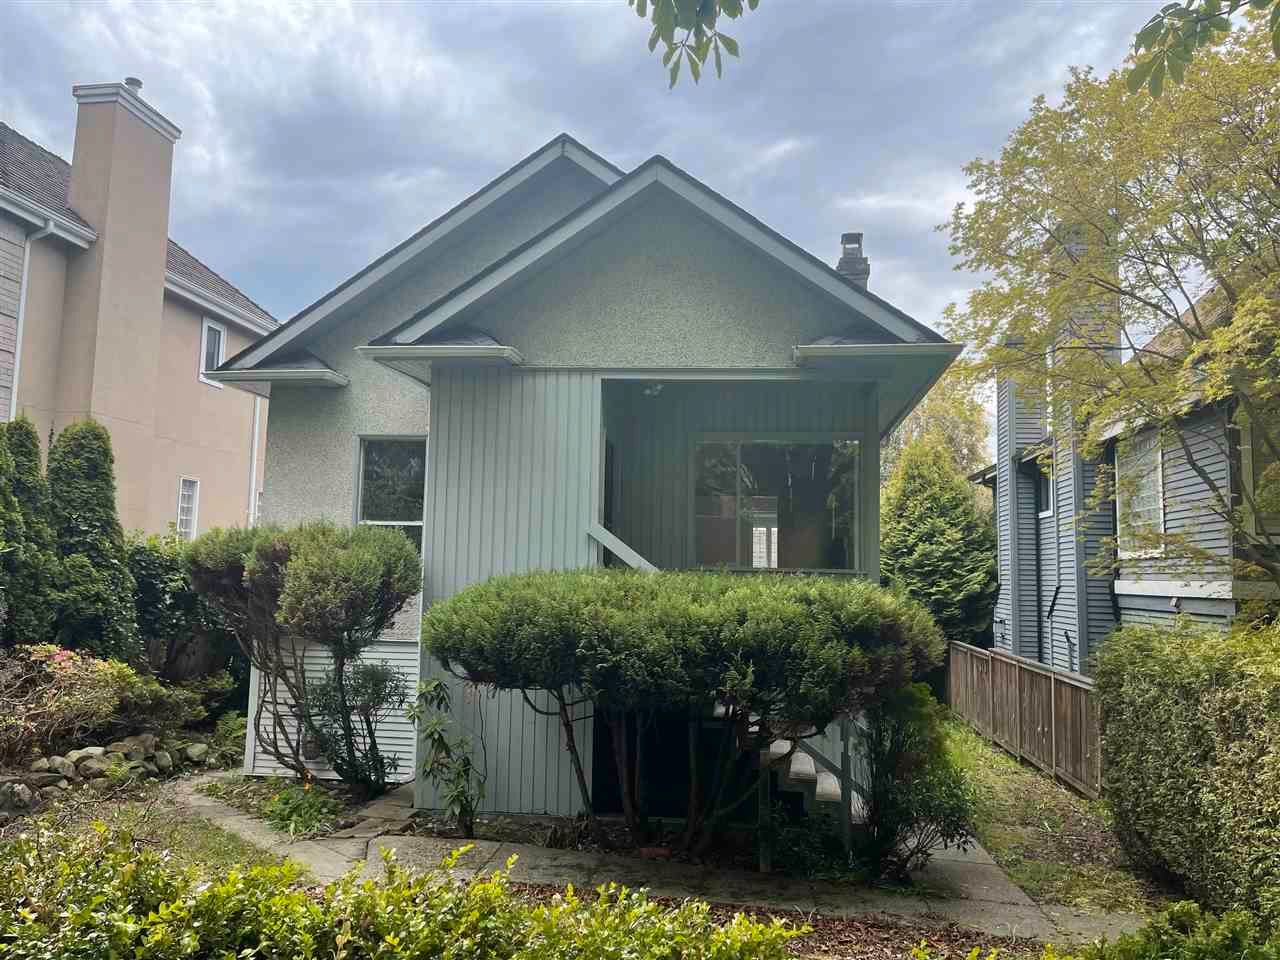 Main Photo: 2974 W 42ND Avenue in Vancouver: Kerrisdale House for sale (Vancouver West)  : MLS®# R2578698